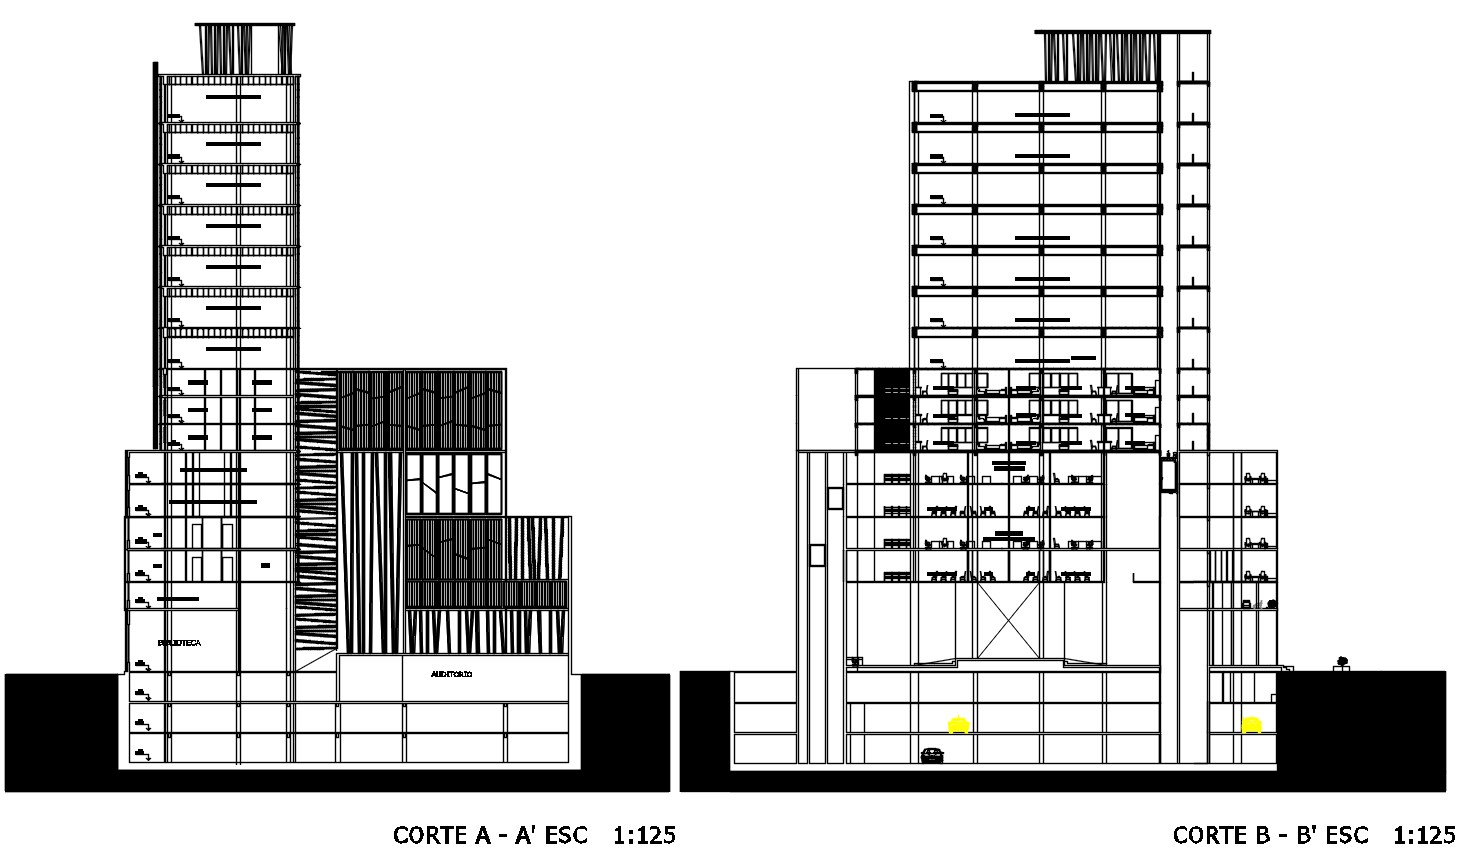 Architecture Corporate Building Section Drawing Autocad